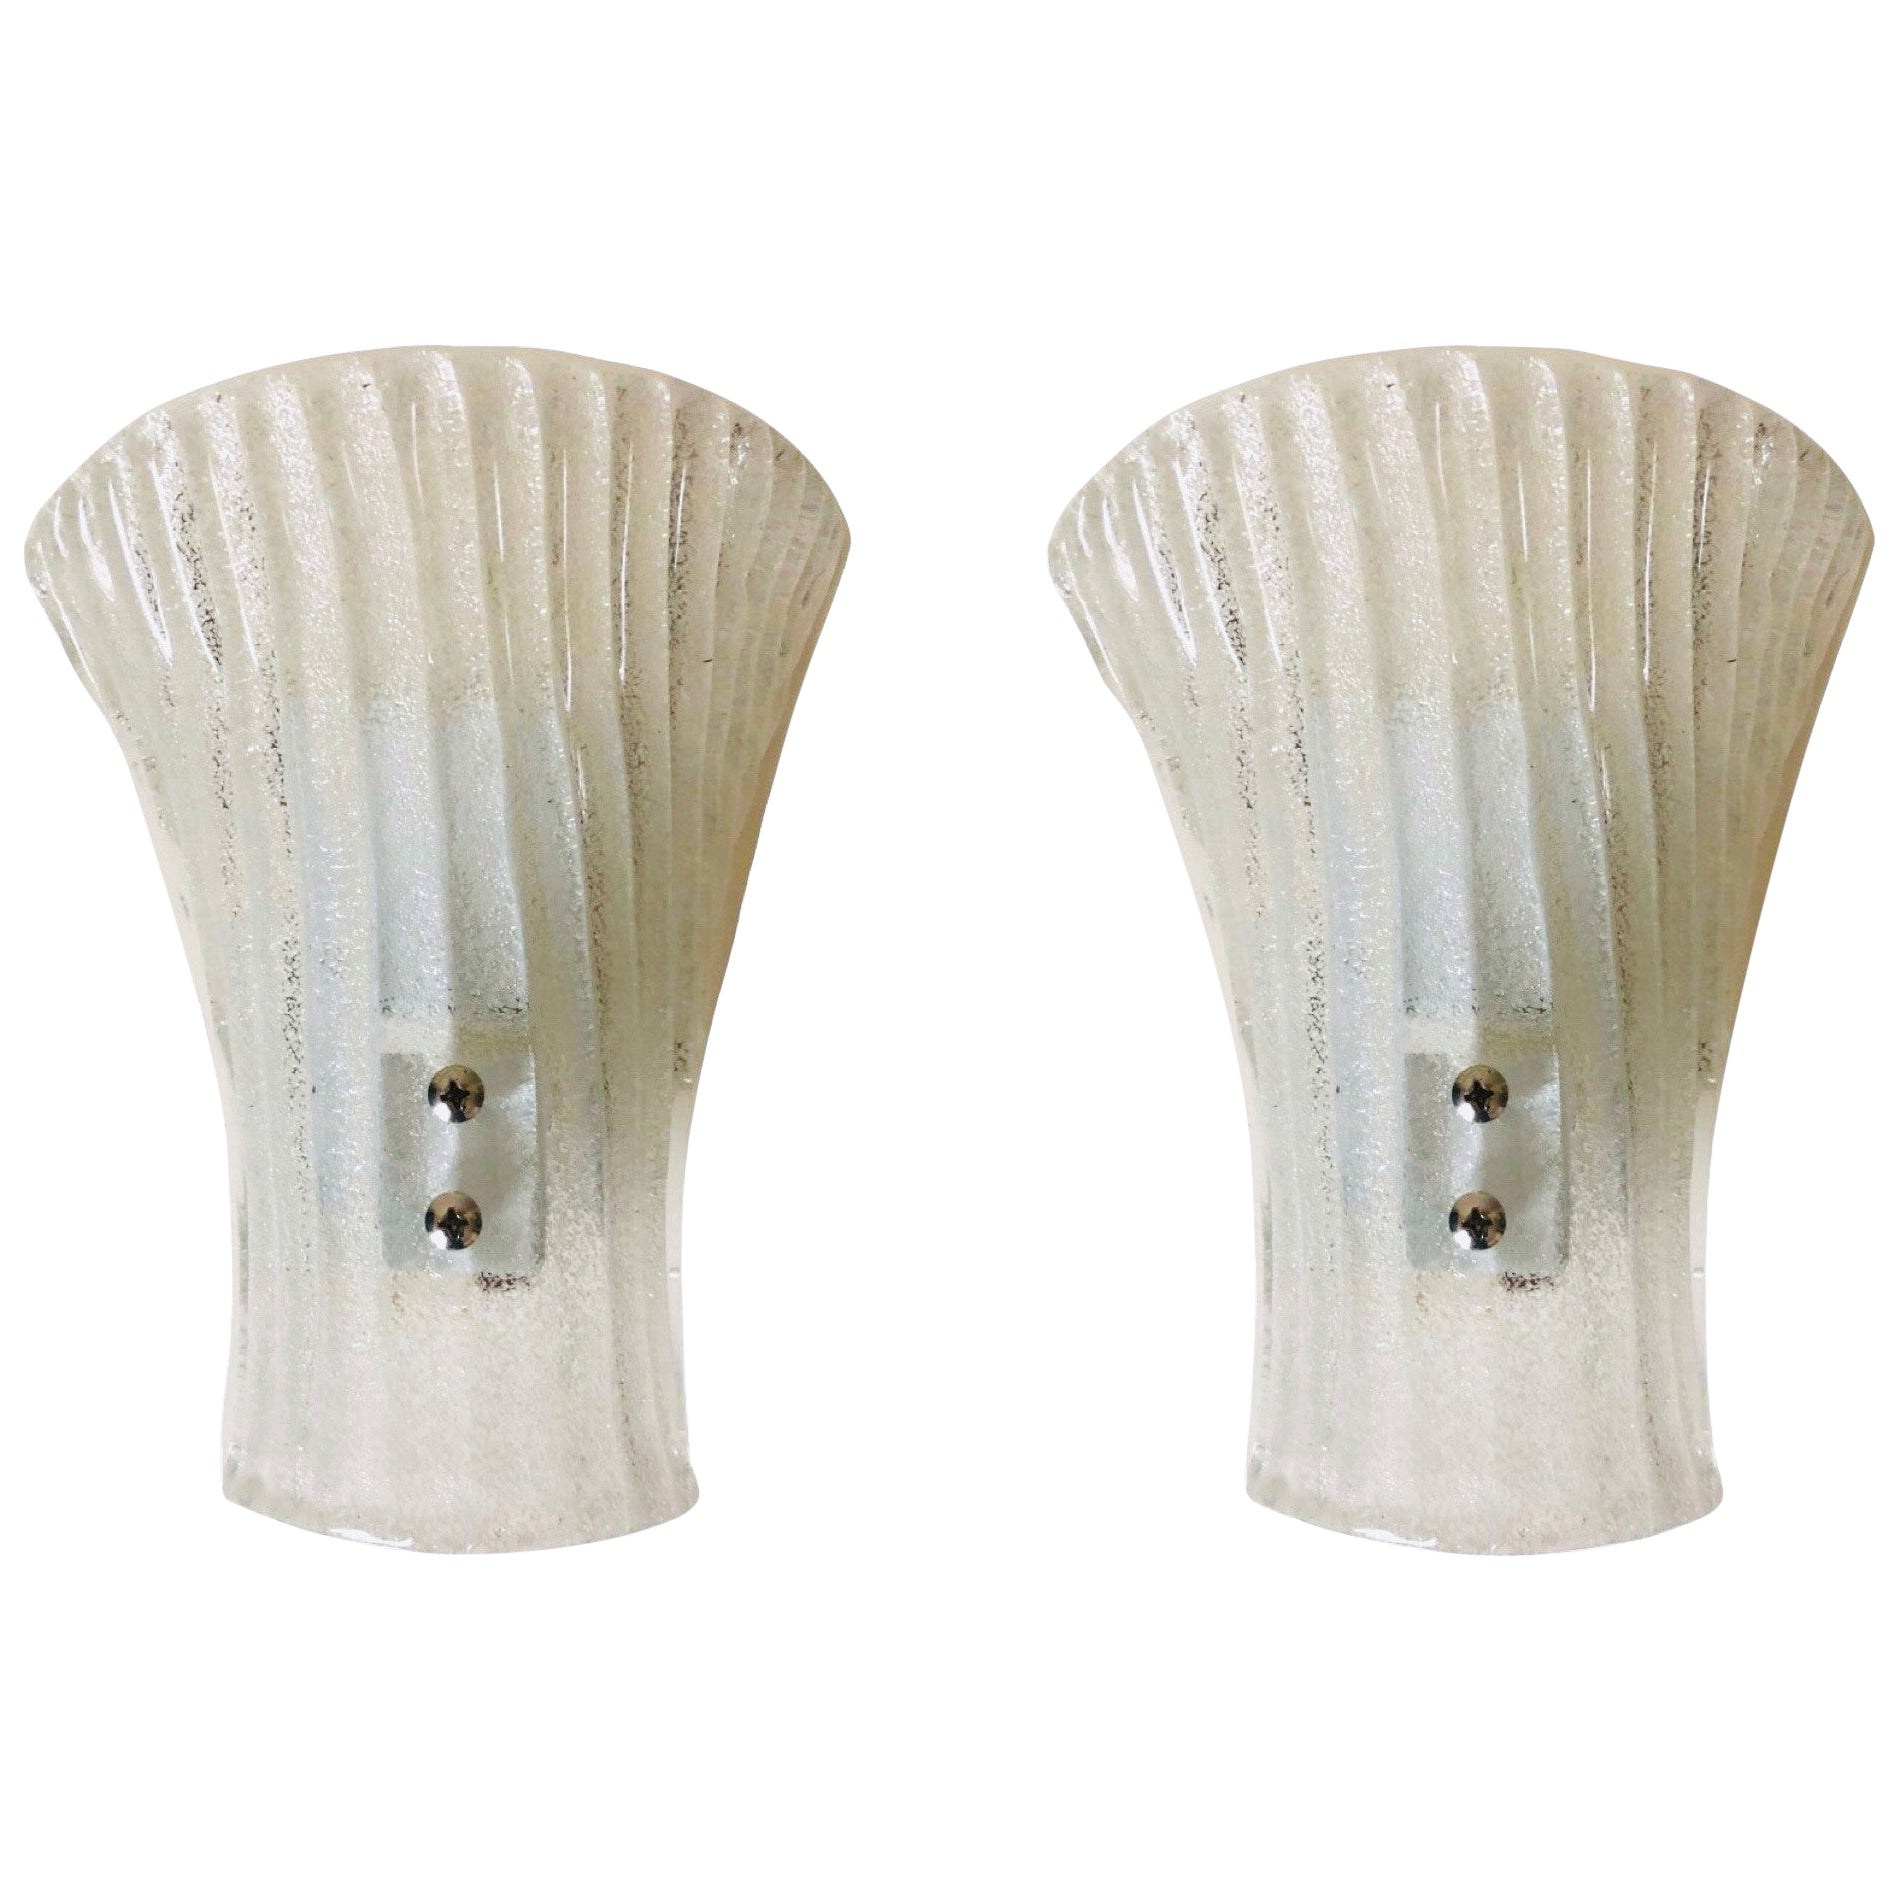 Pair of Midcentury Barovier & Toso Clear Murano Glass Wall Sconces, 1970s